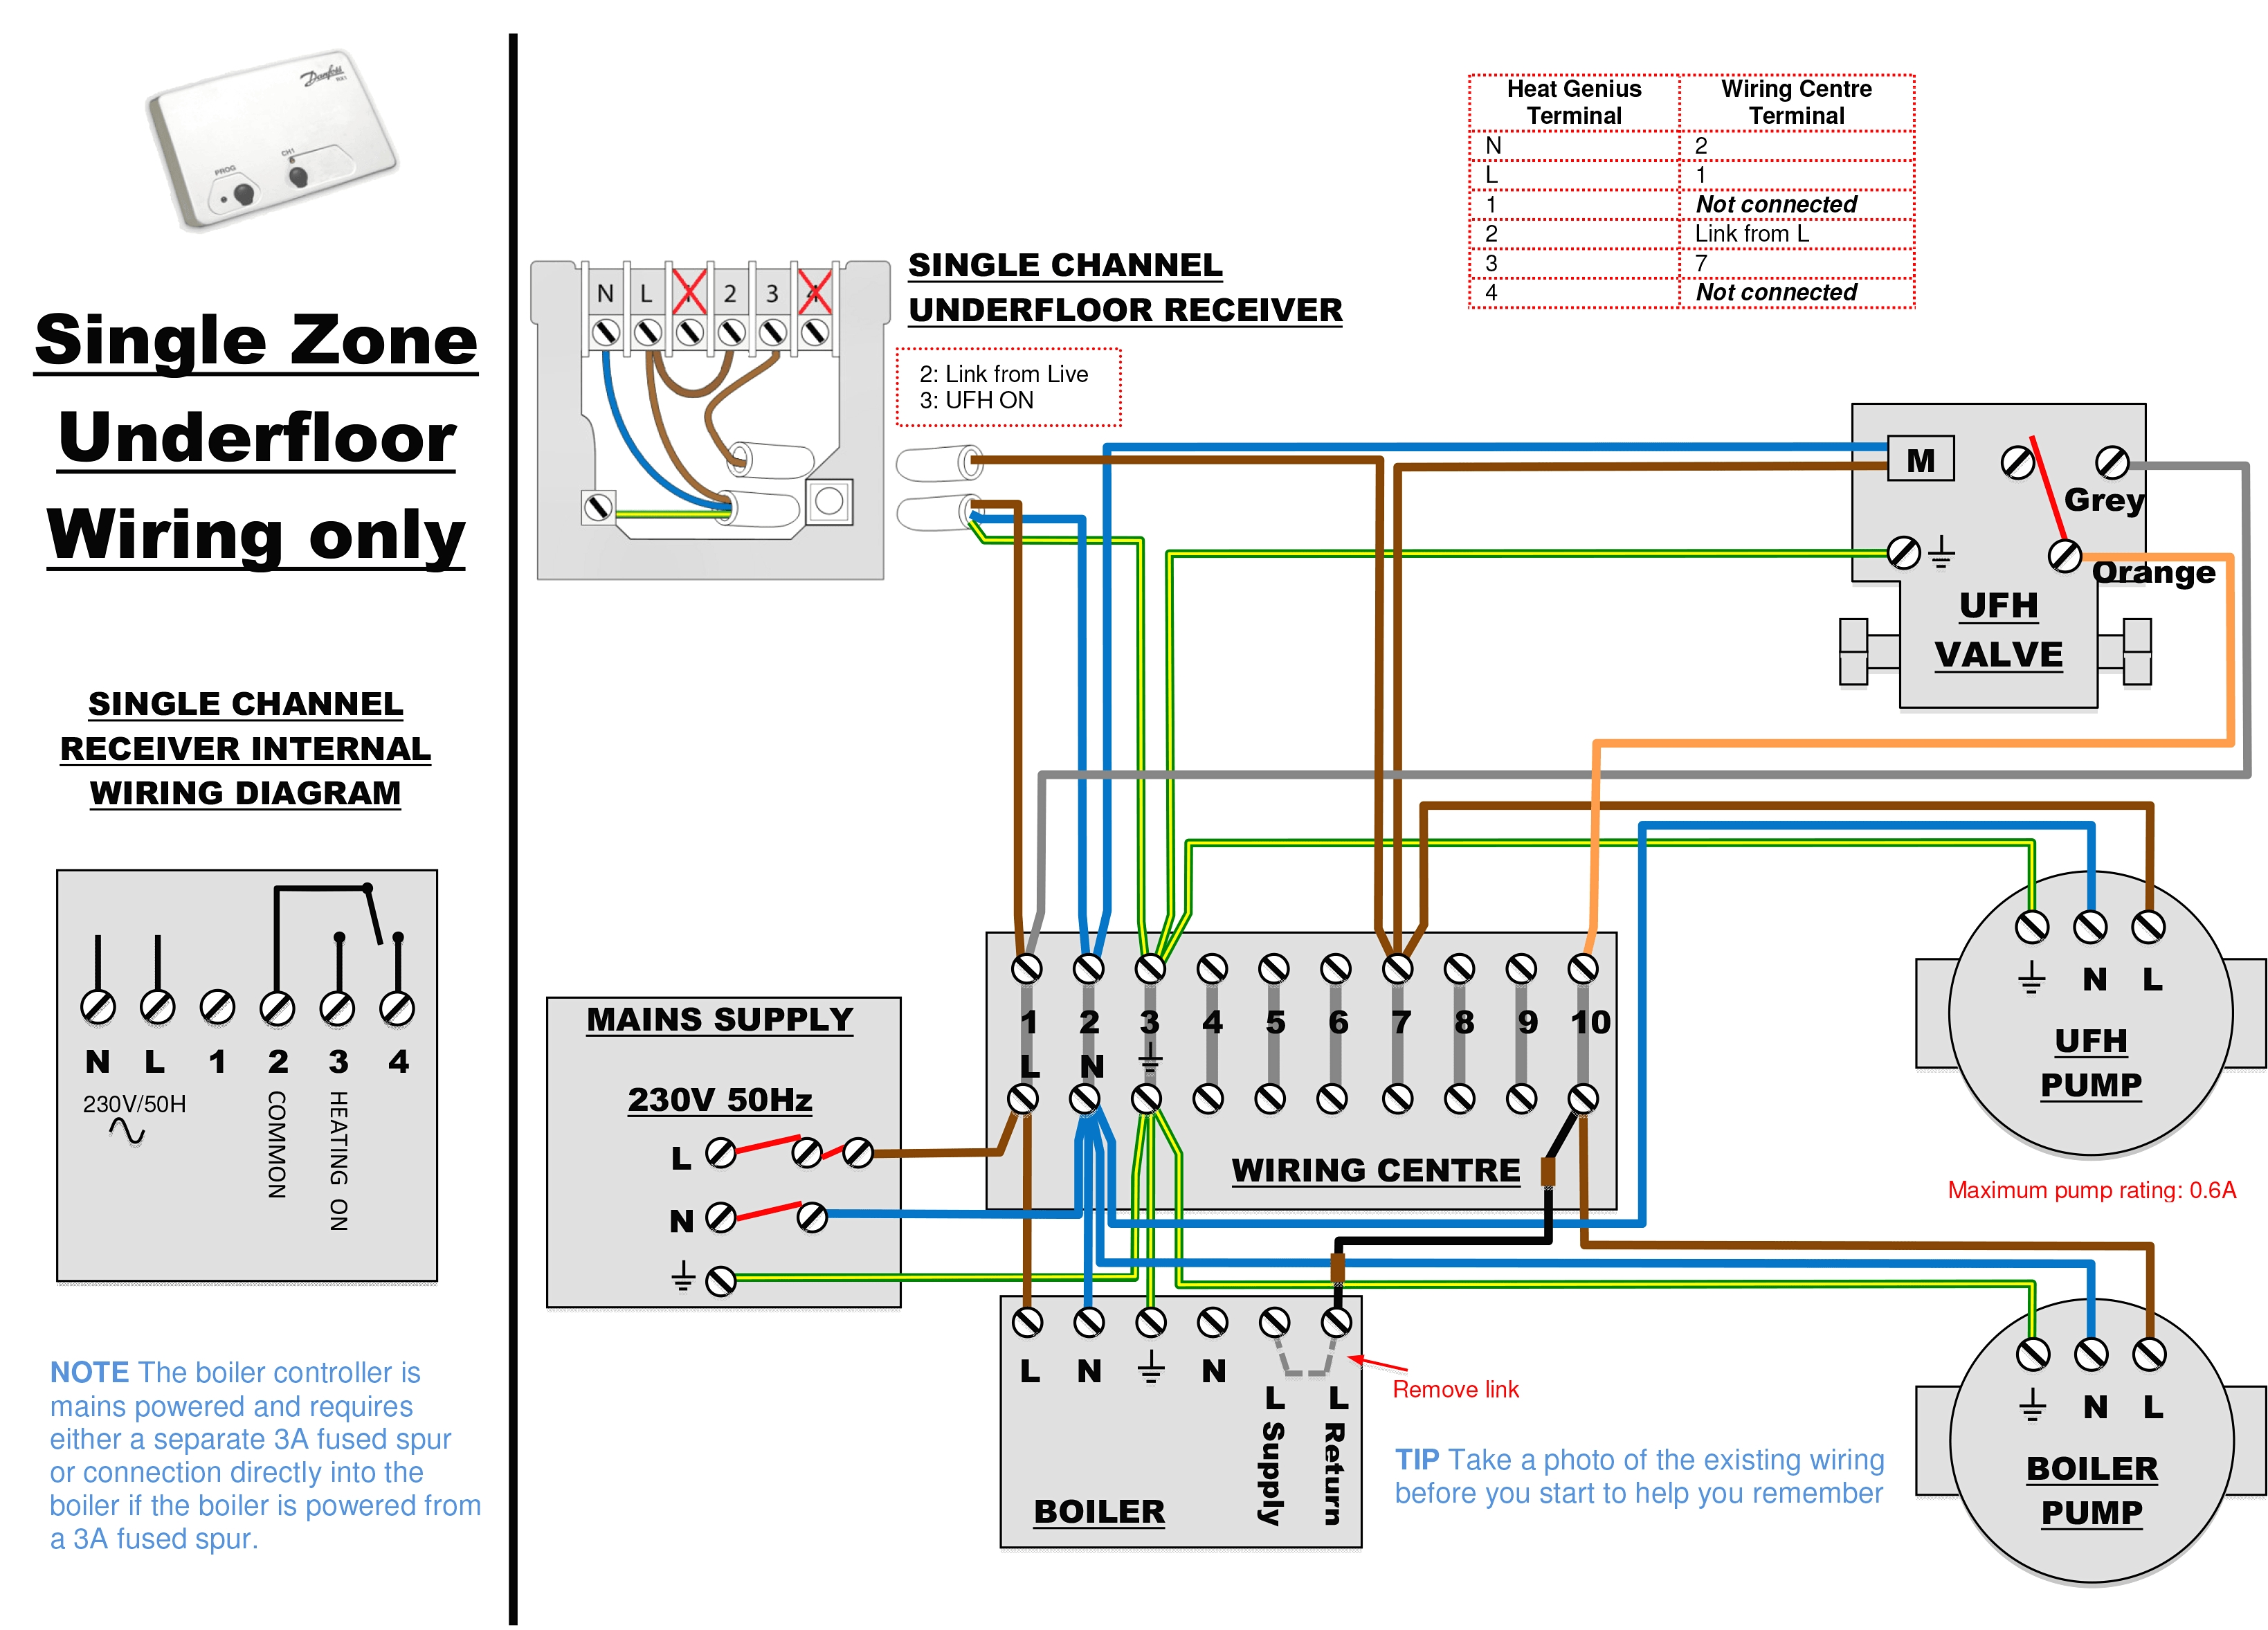 electric floor heating wiring diagram Collection-Electric Floor Heating Wiring Diagram Central Boiler thermostat Wiring Diagram Download Hive thermostat Wiring Diagram 16-s